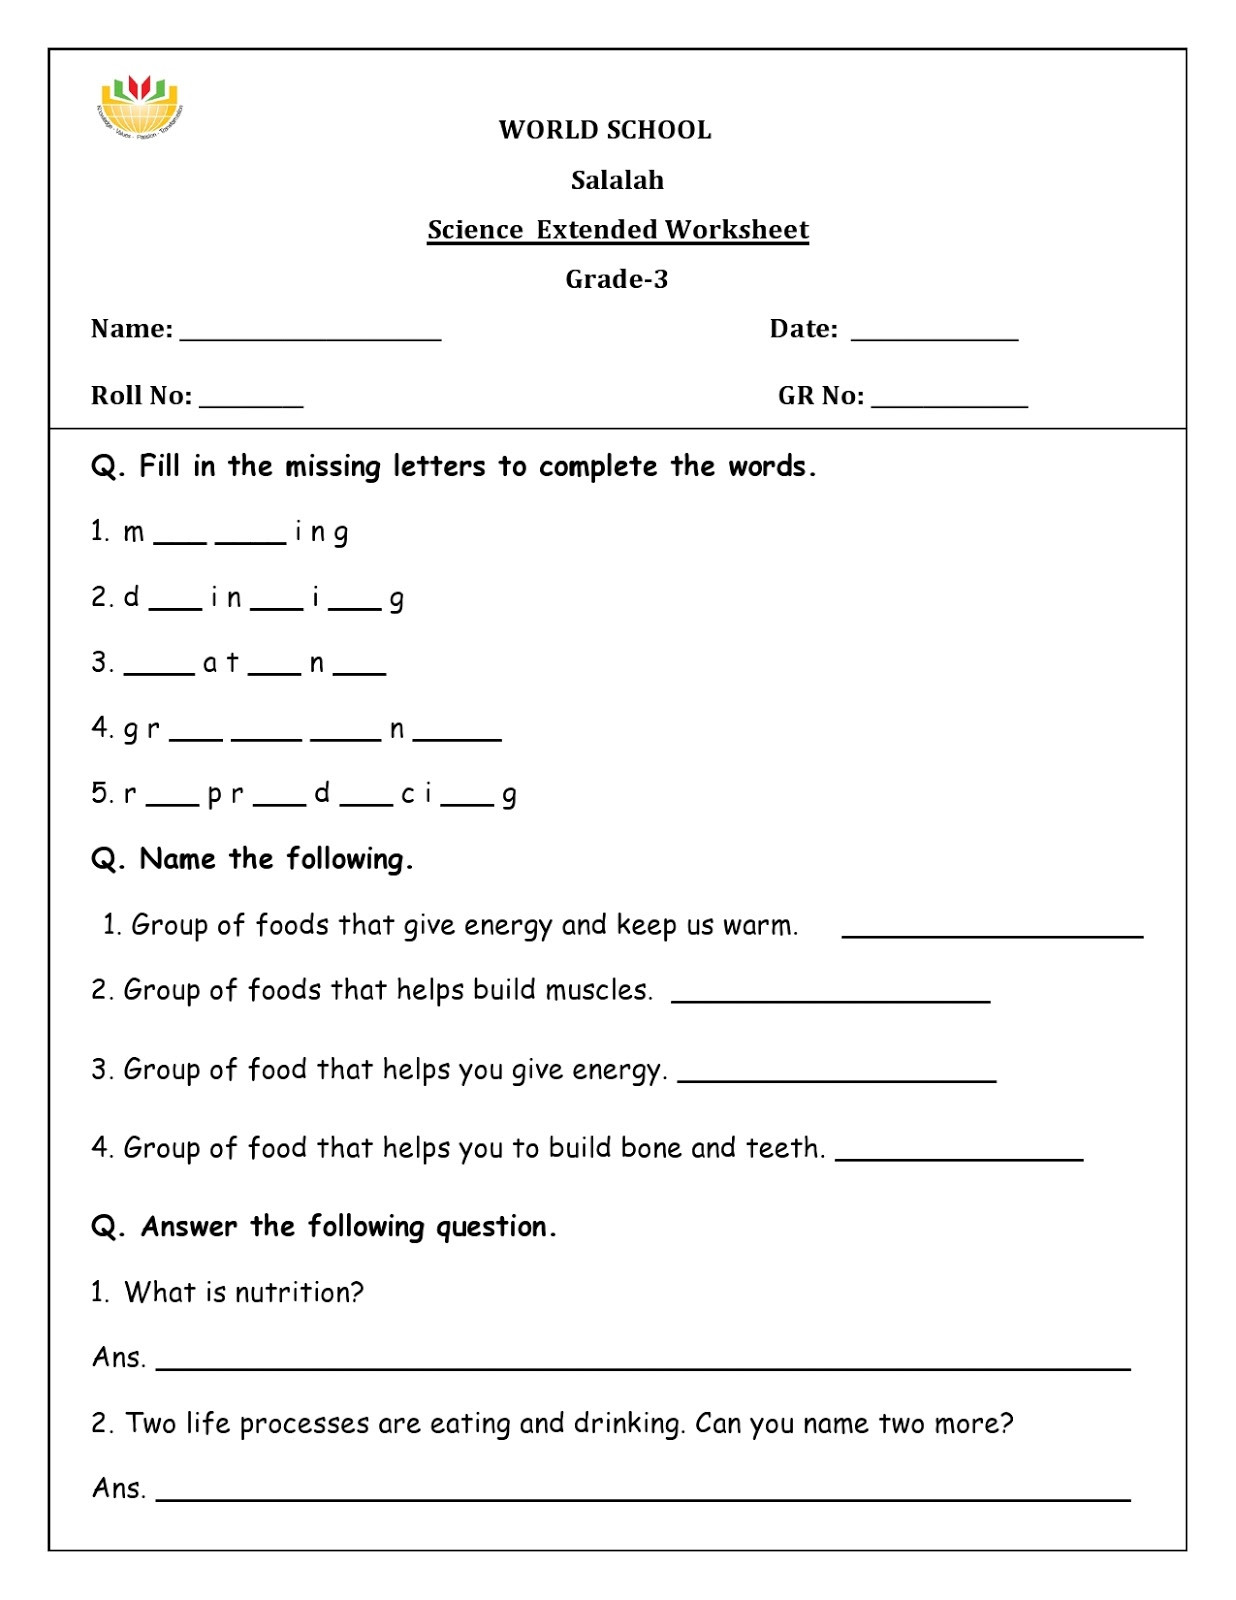 Energy Worksheets for 3rd Grade World School Homework for Grade as English Worksheets